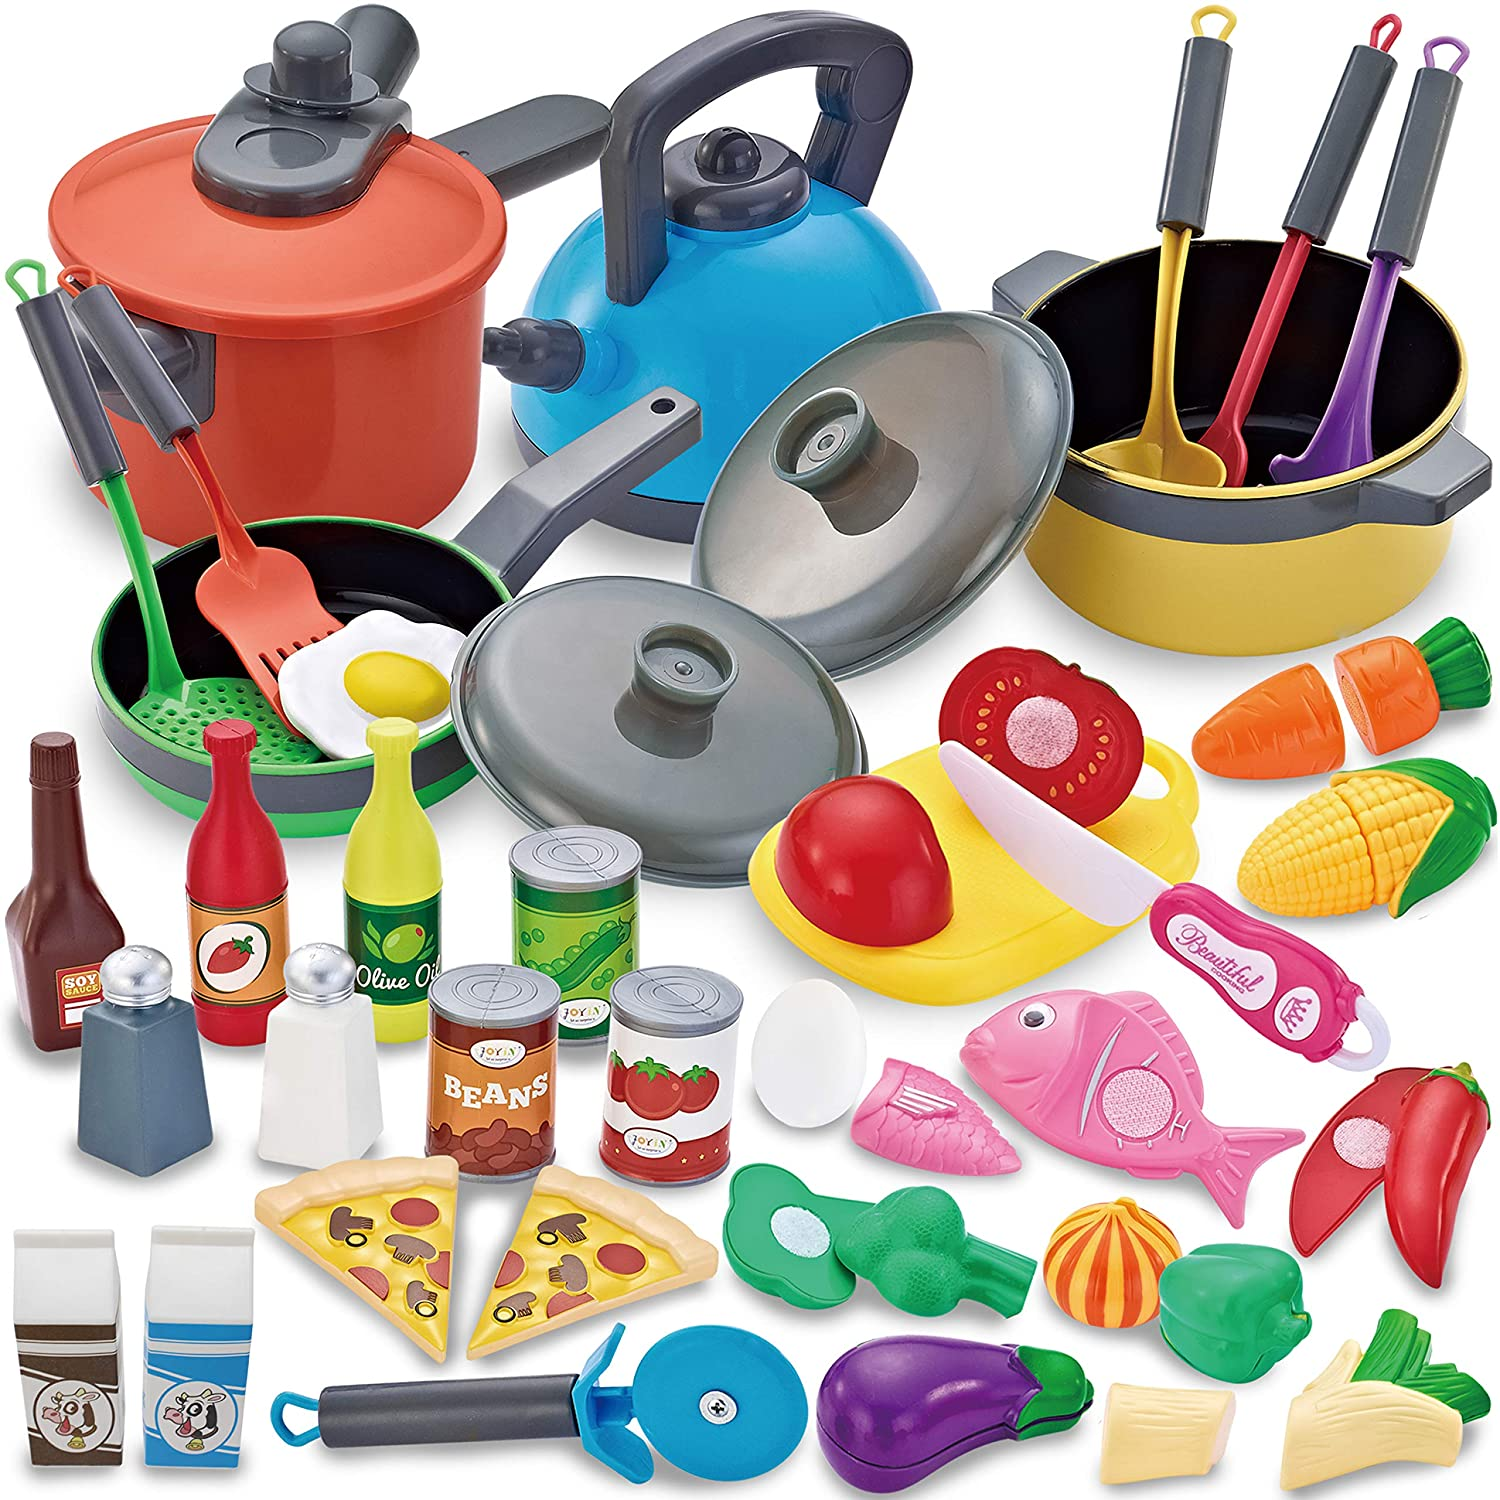 Amazon Com Joyin 36 Pieces Cooking Pretend Play Toy Kitchen Cookware Playset Including Pots And Pans Play Food Cutting Vegetables Toy Utensils Toys Games